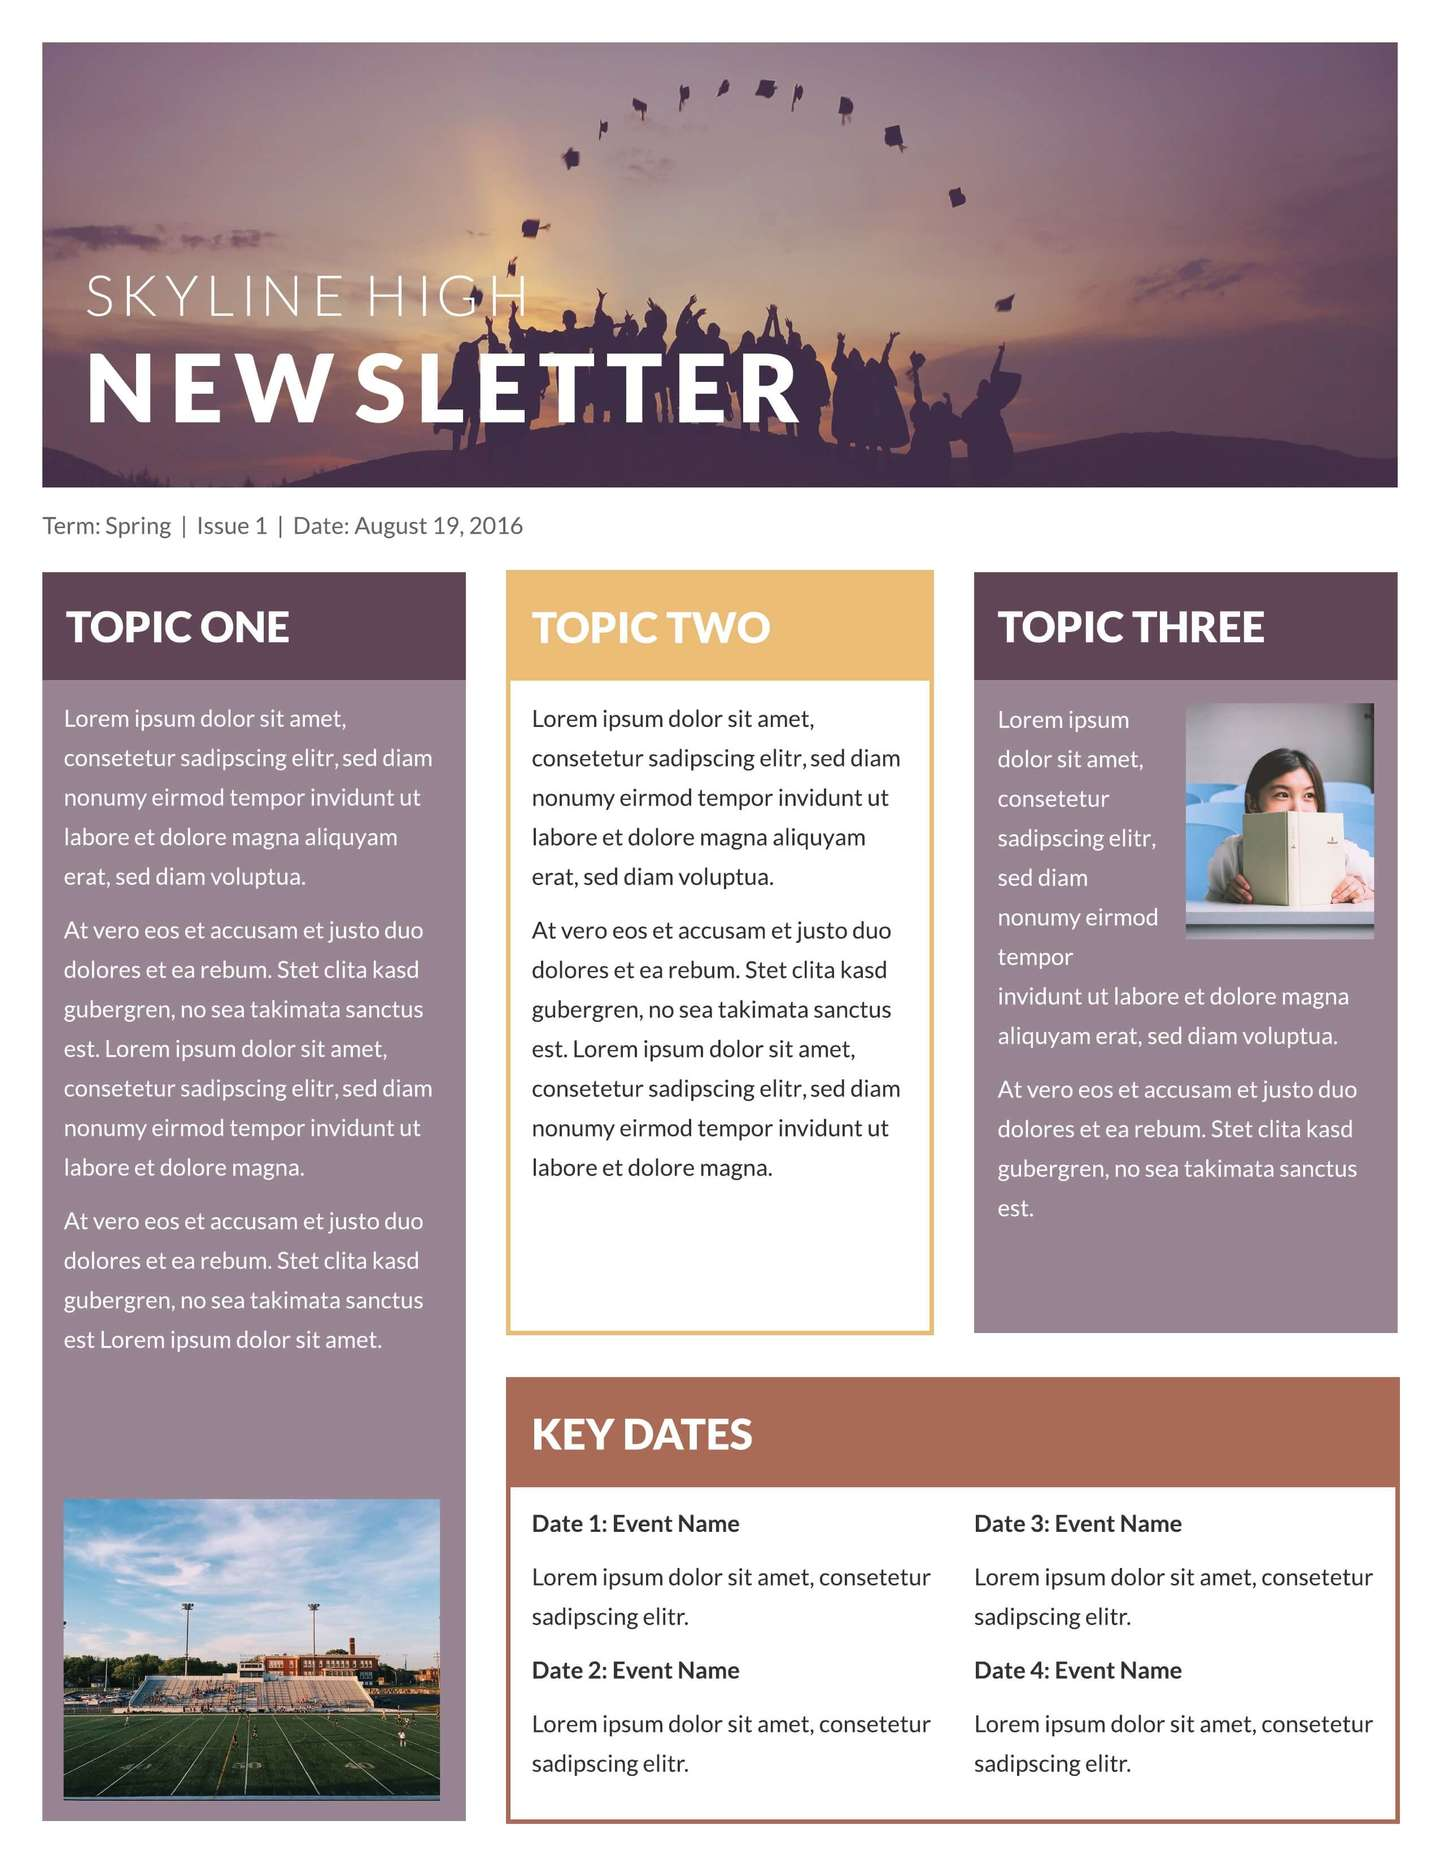 Free printable newsletter templates email newsletter examples skyline high classroom newsletter template spiritdancerdesigns Image collections